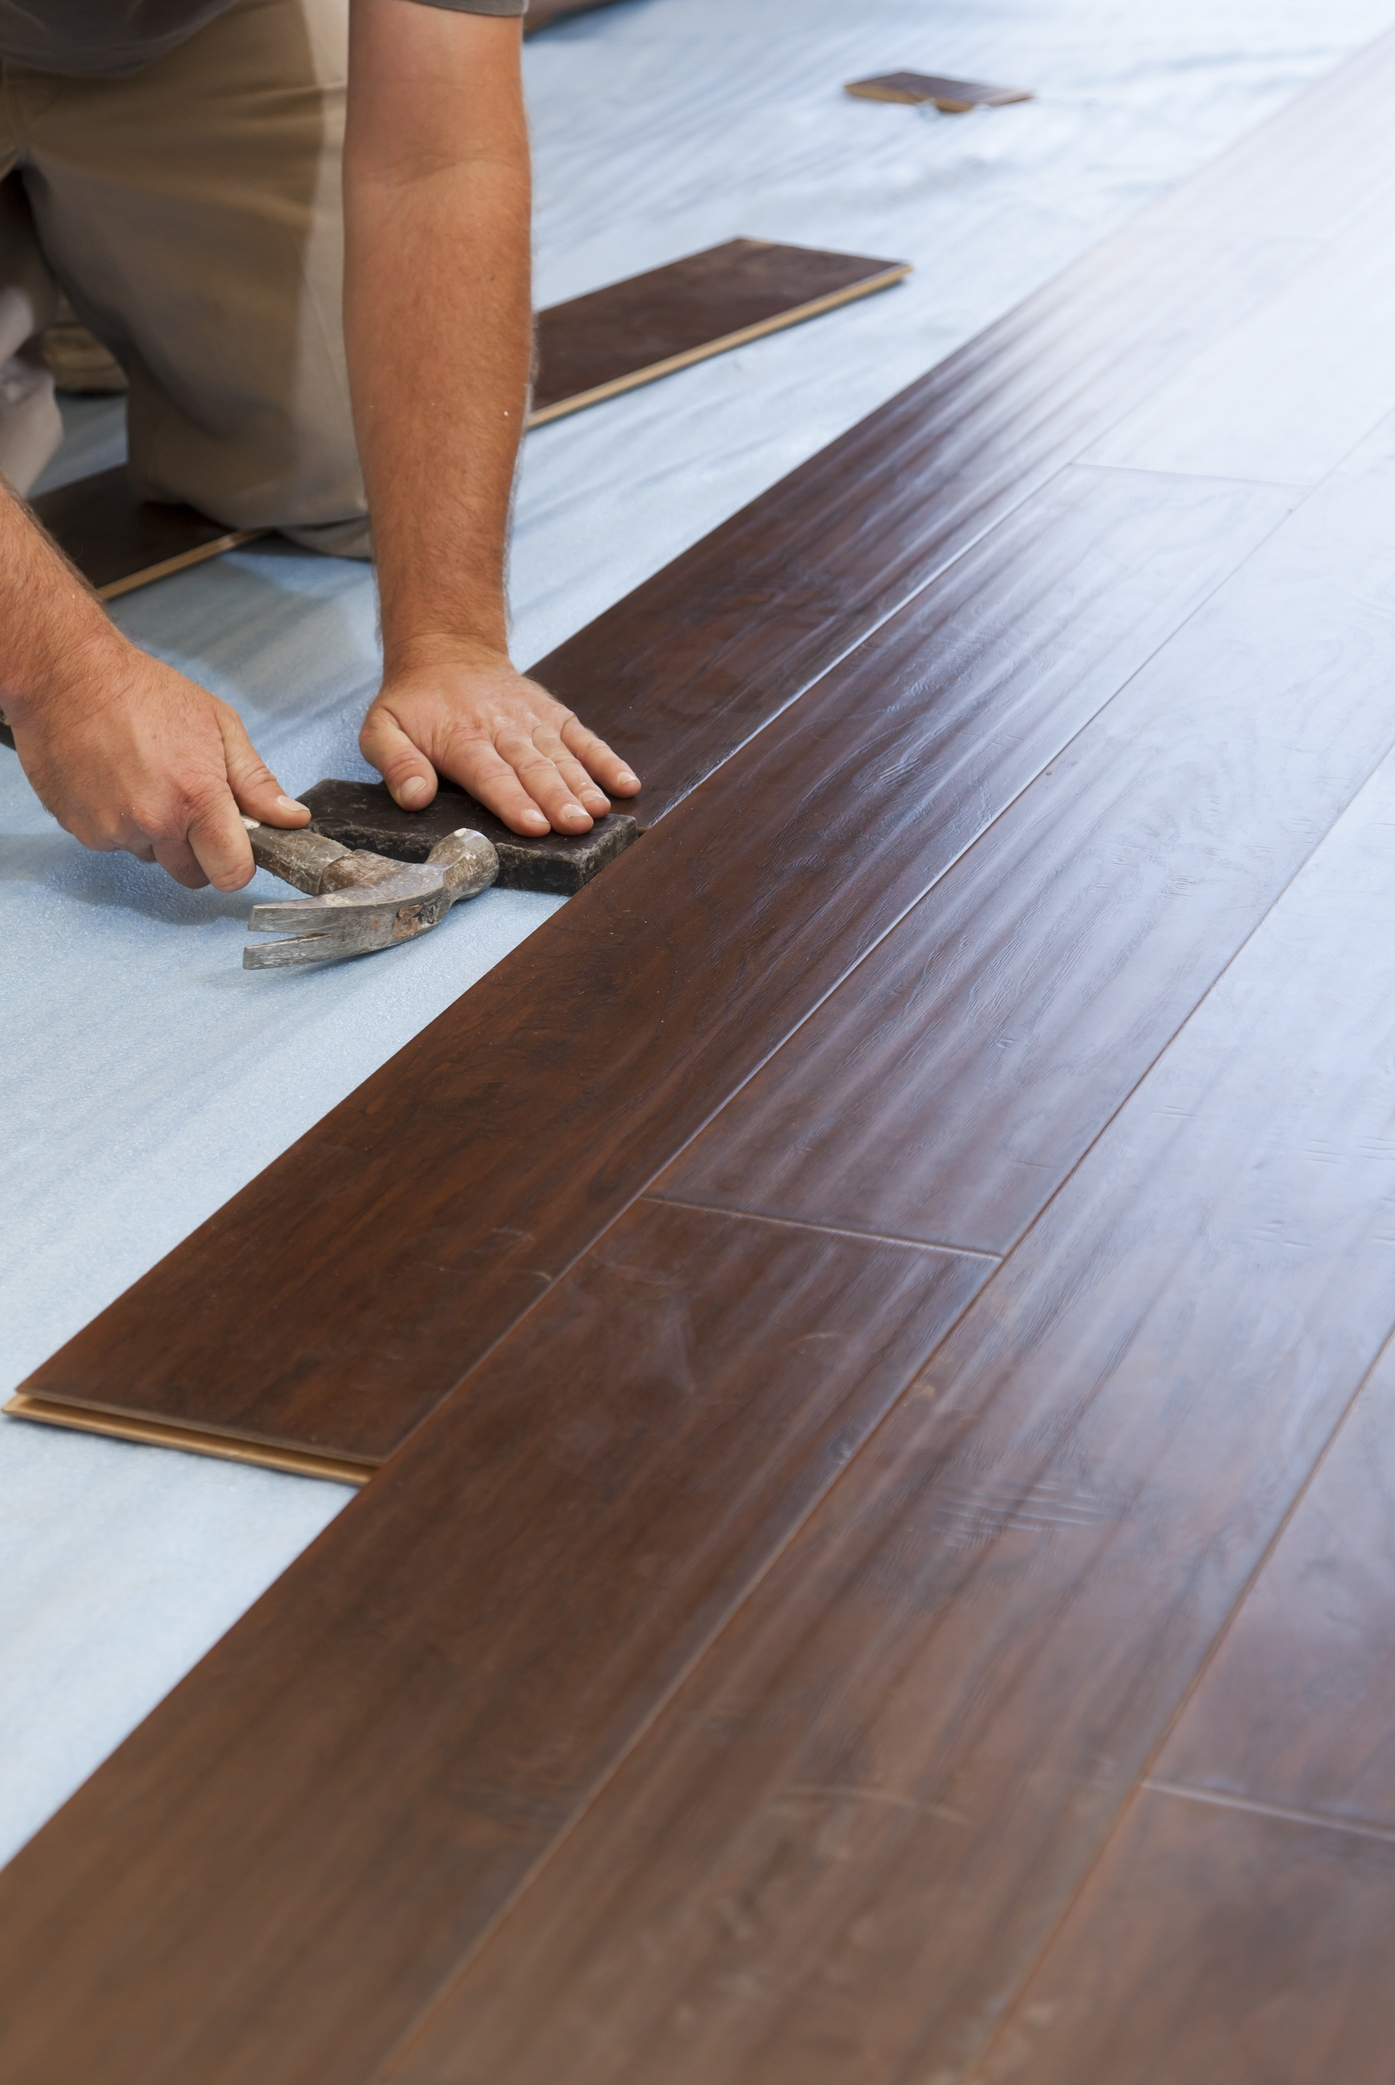 Gj flooring quality flooring at affordable prices for Hardwood floors quality